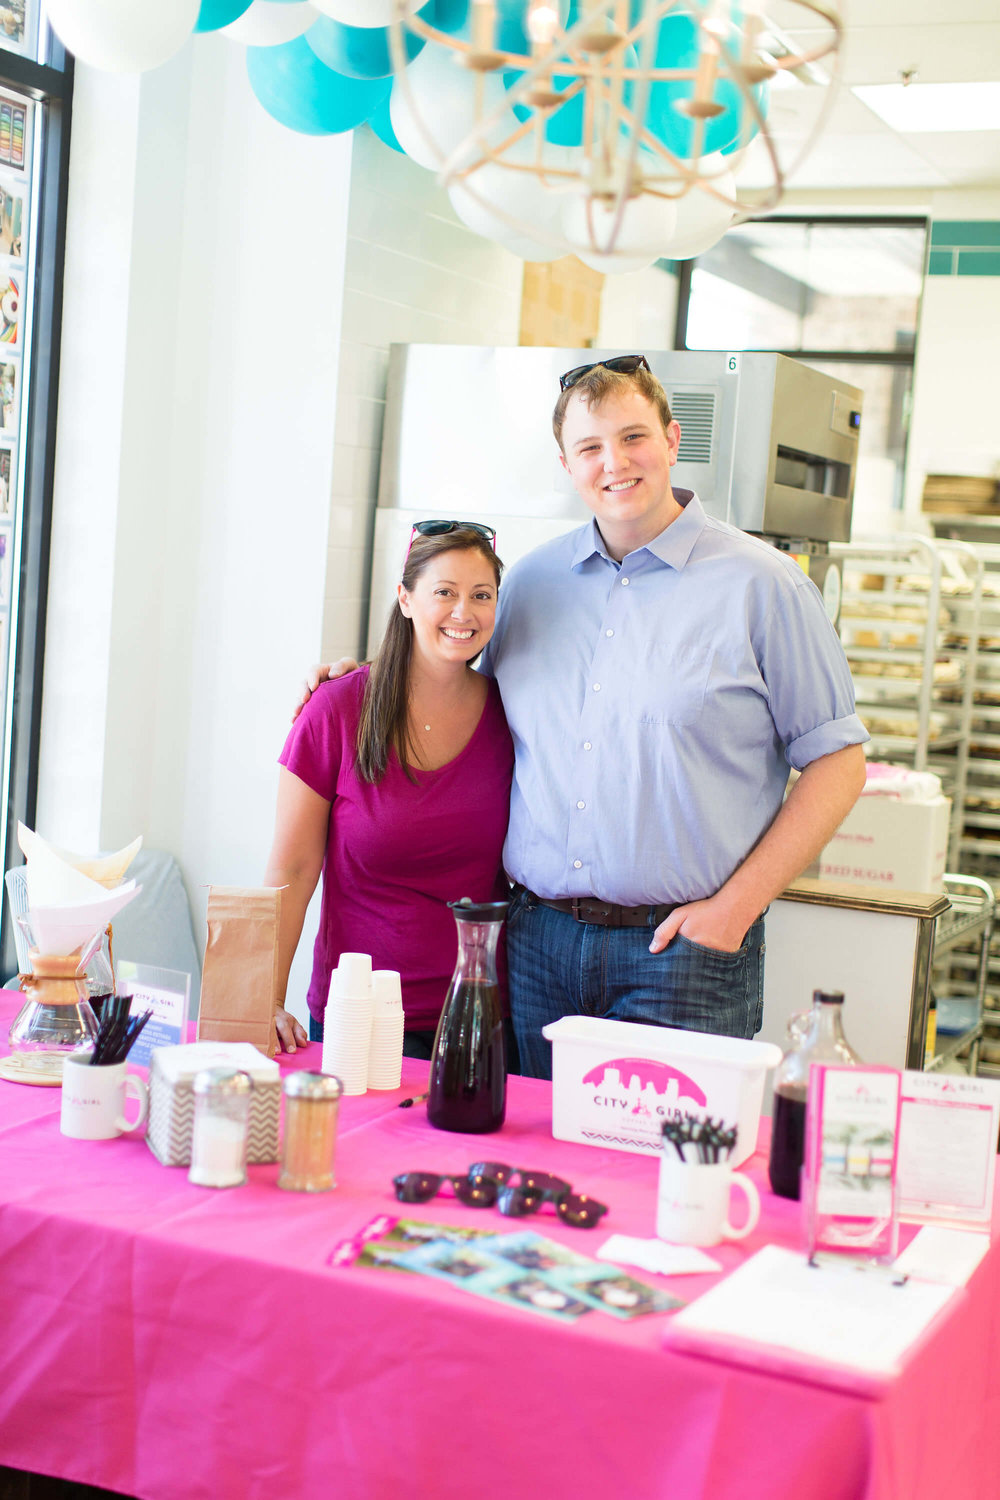 engle-olson-ashley-elwill-photography-amys-cupcake-shoppe-one-year-14.jpg